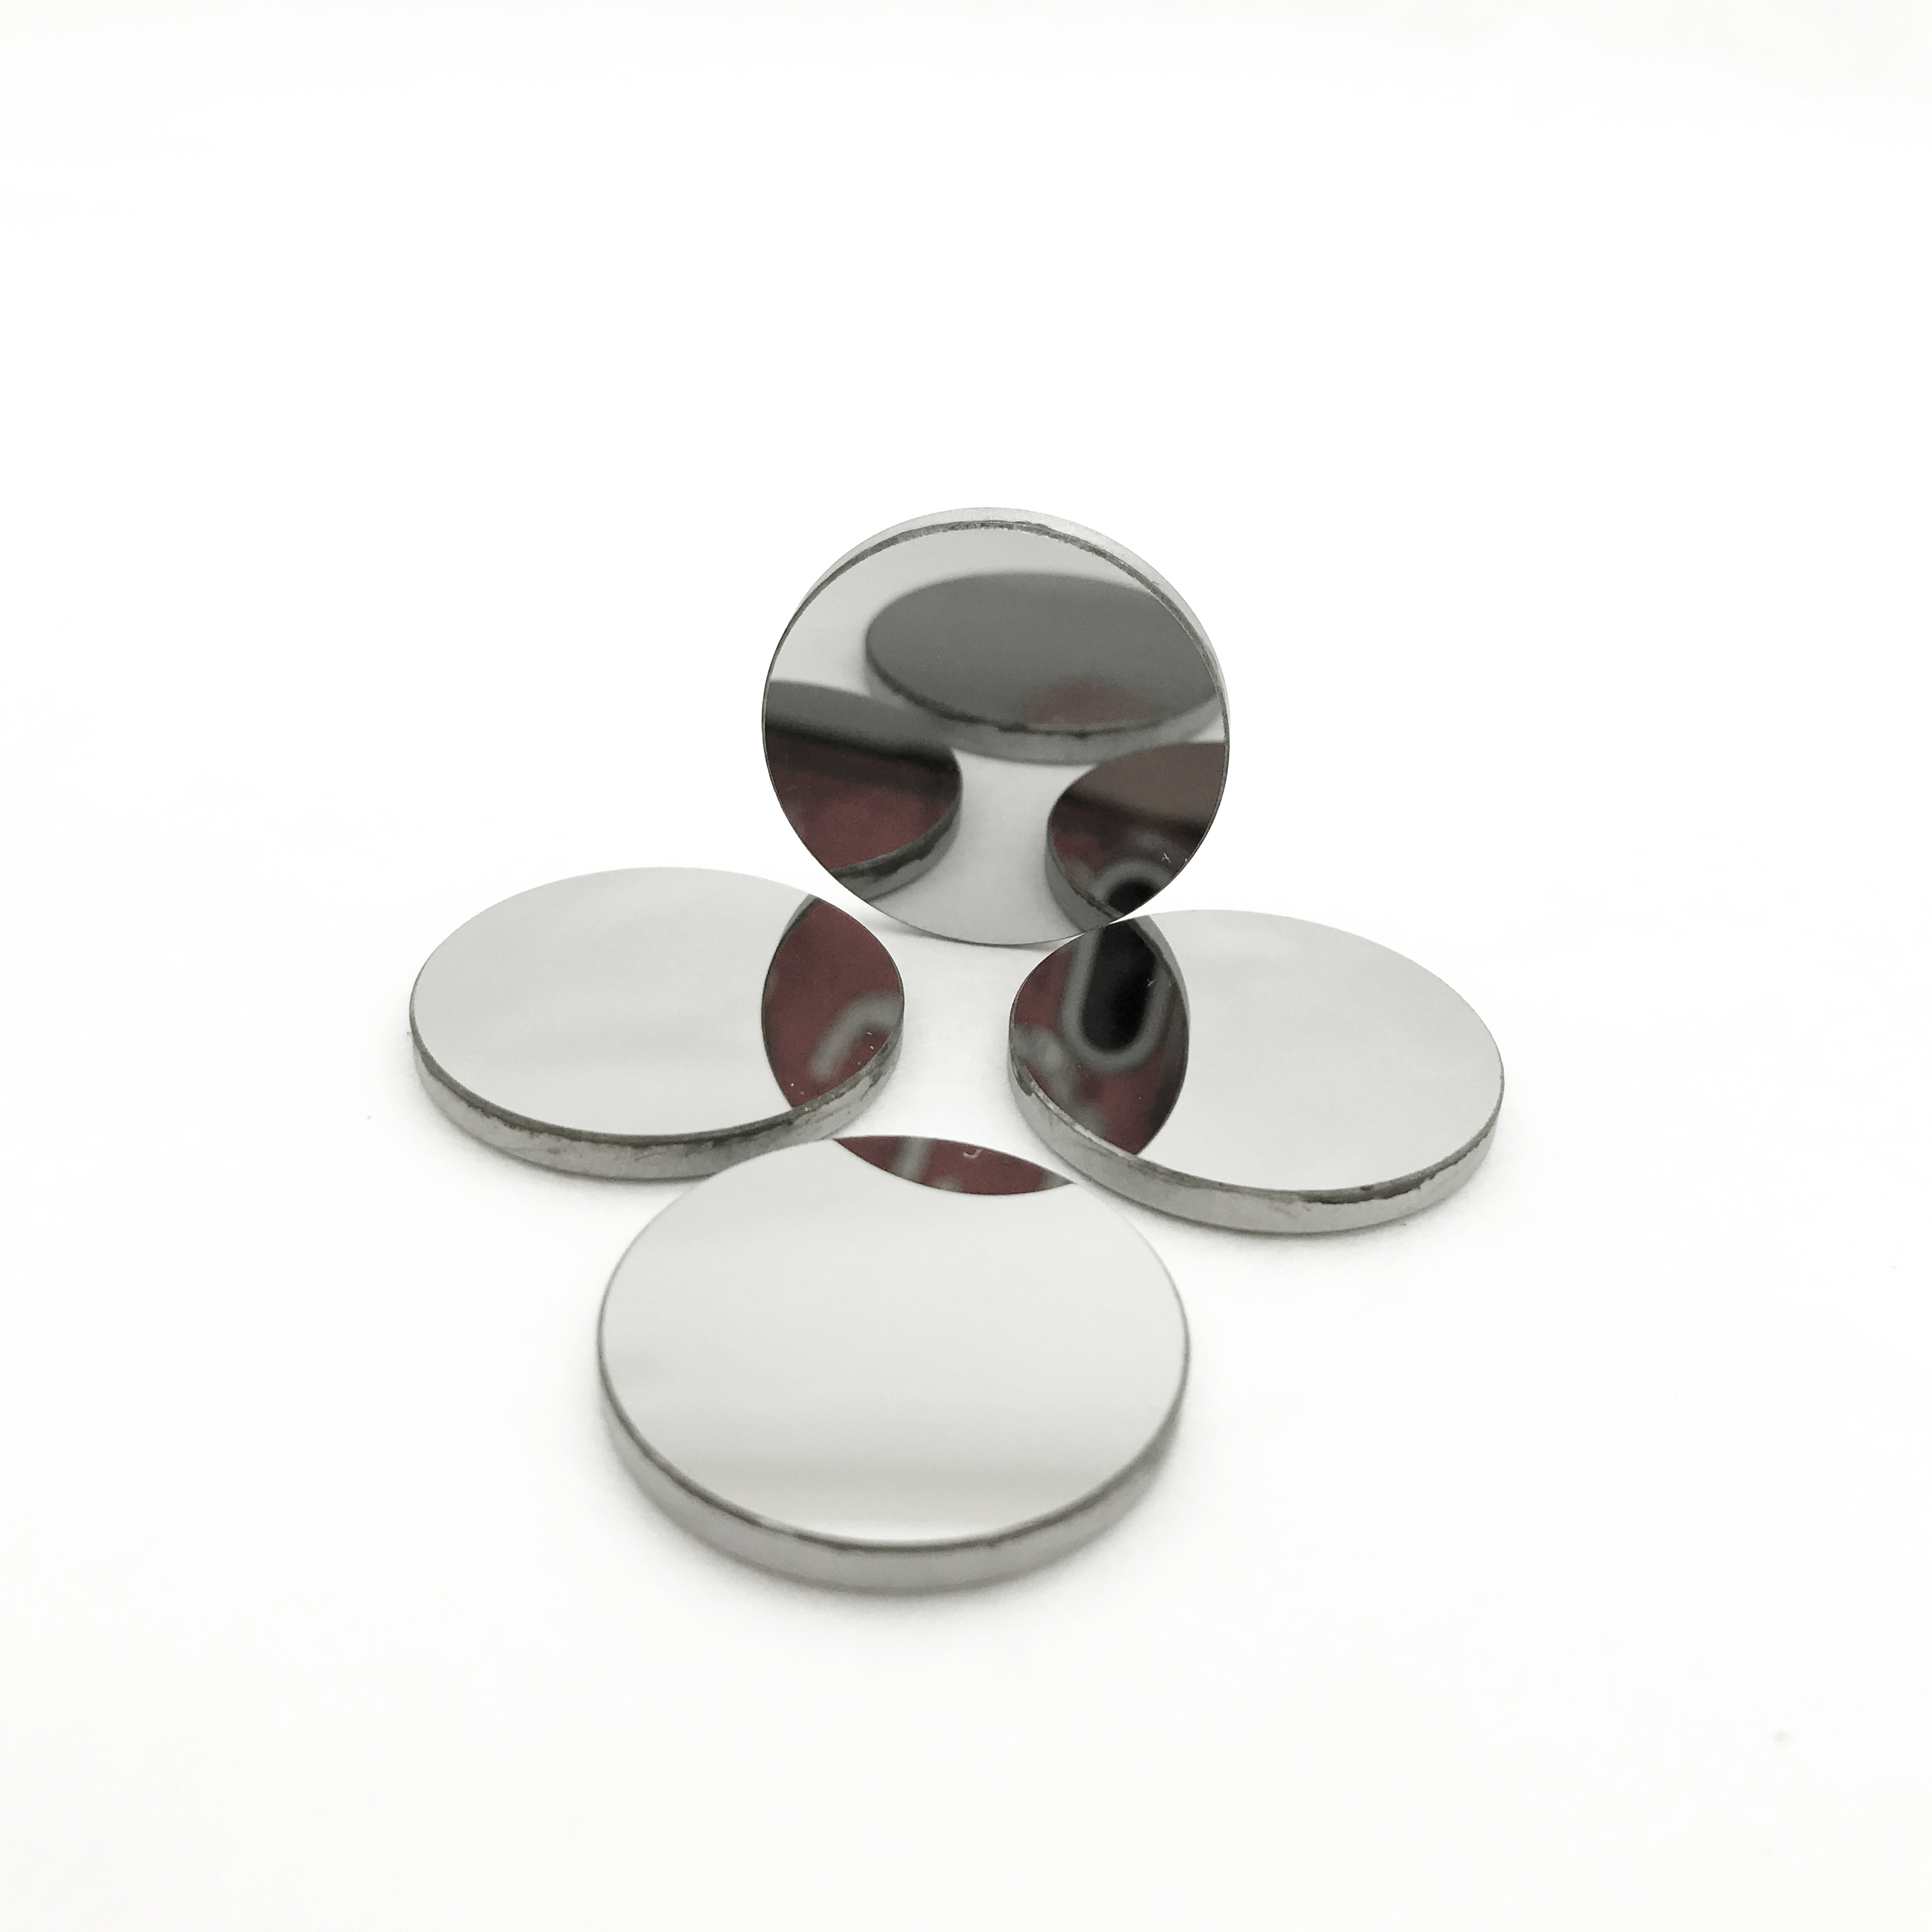 Reflective Mo mirror dia 19.05 20 25 30mm thickness 3mm for CO2 laser engraving cutting machine